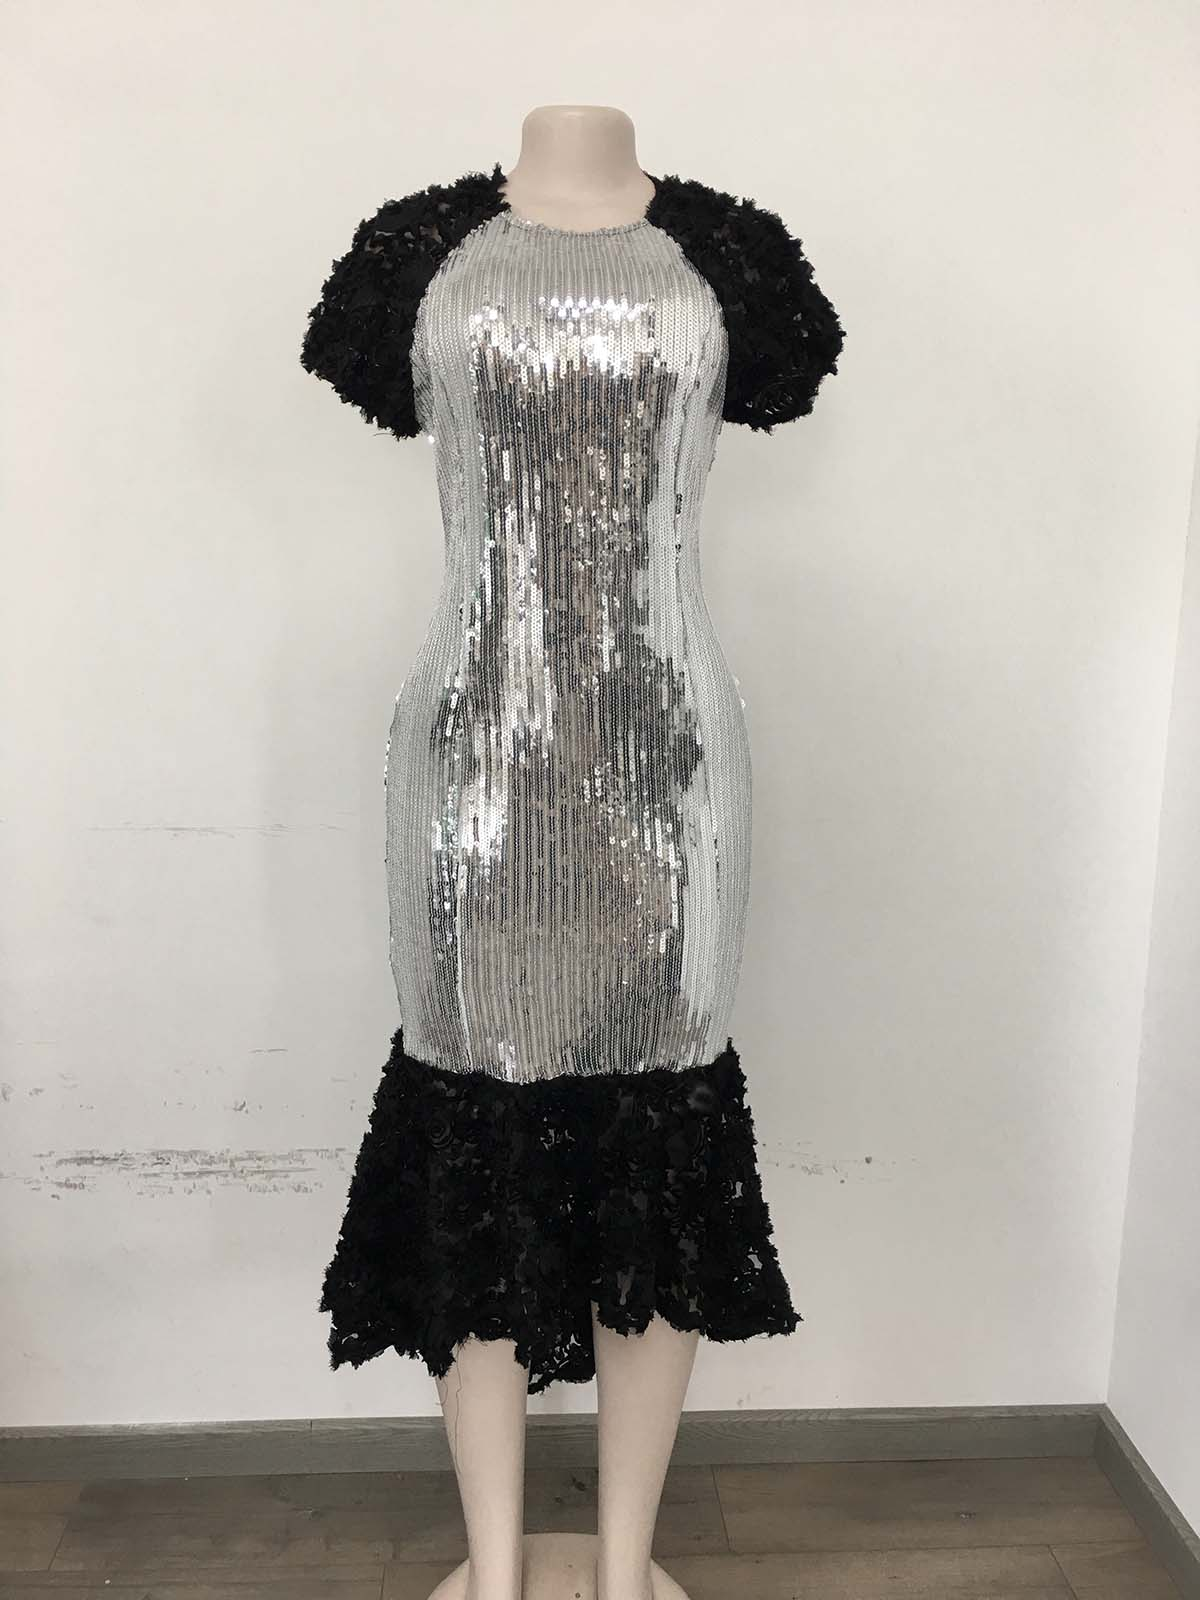 African Dresses For Women 2019 Sequined Africa Clothing Muslim Long Dress High Quality Length Fashion African Dress For Lady